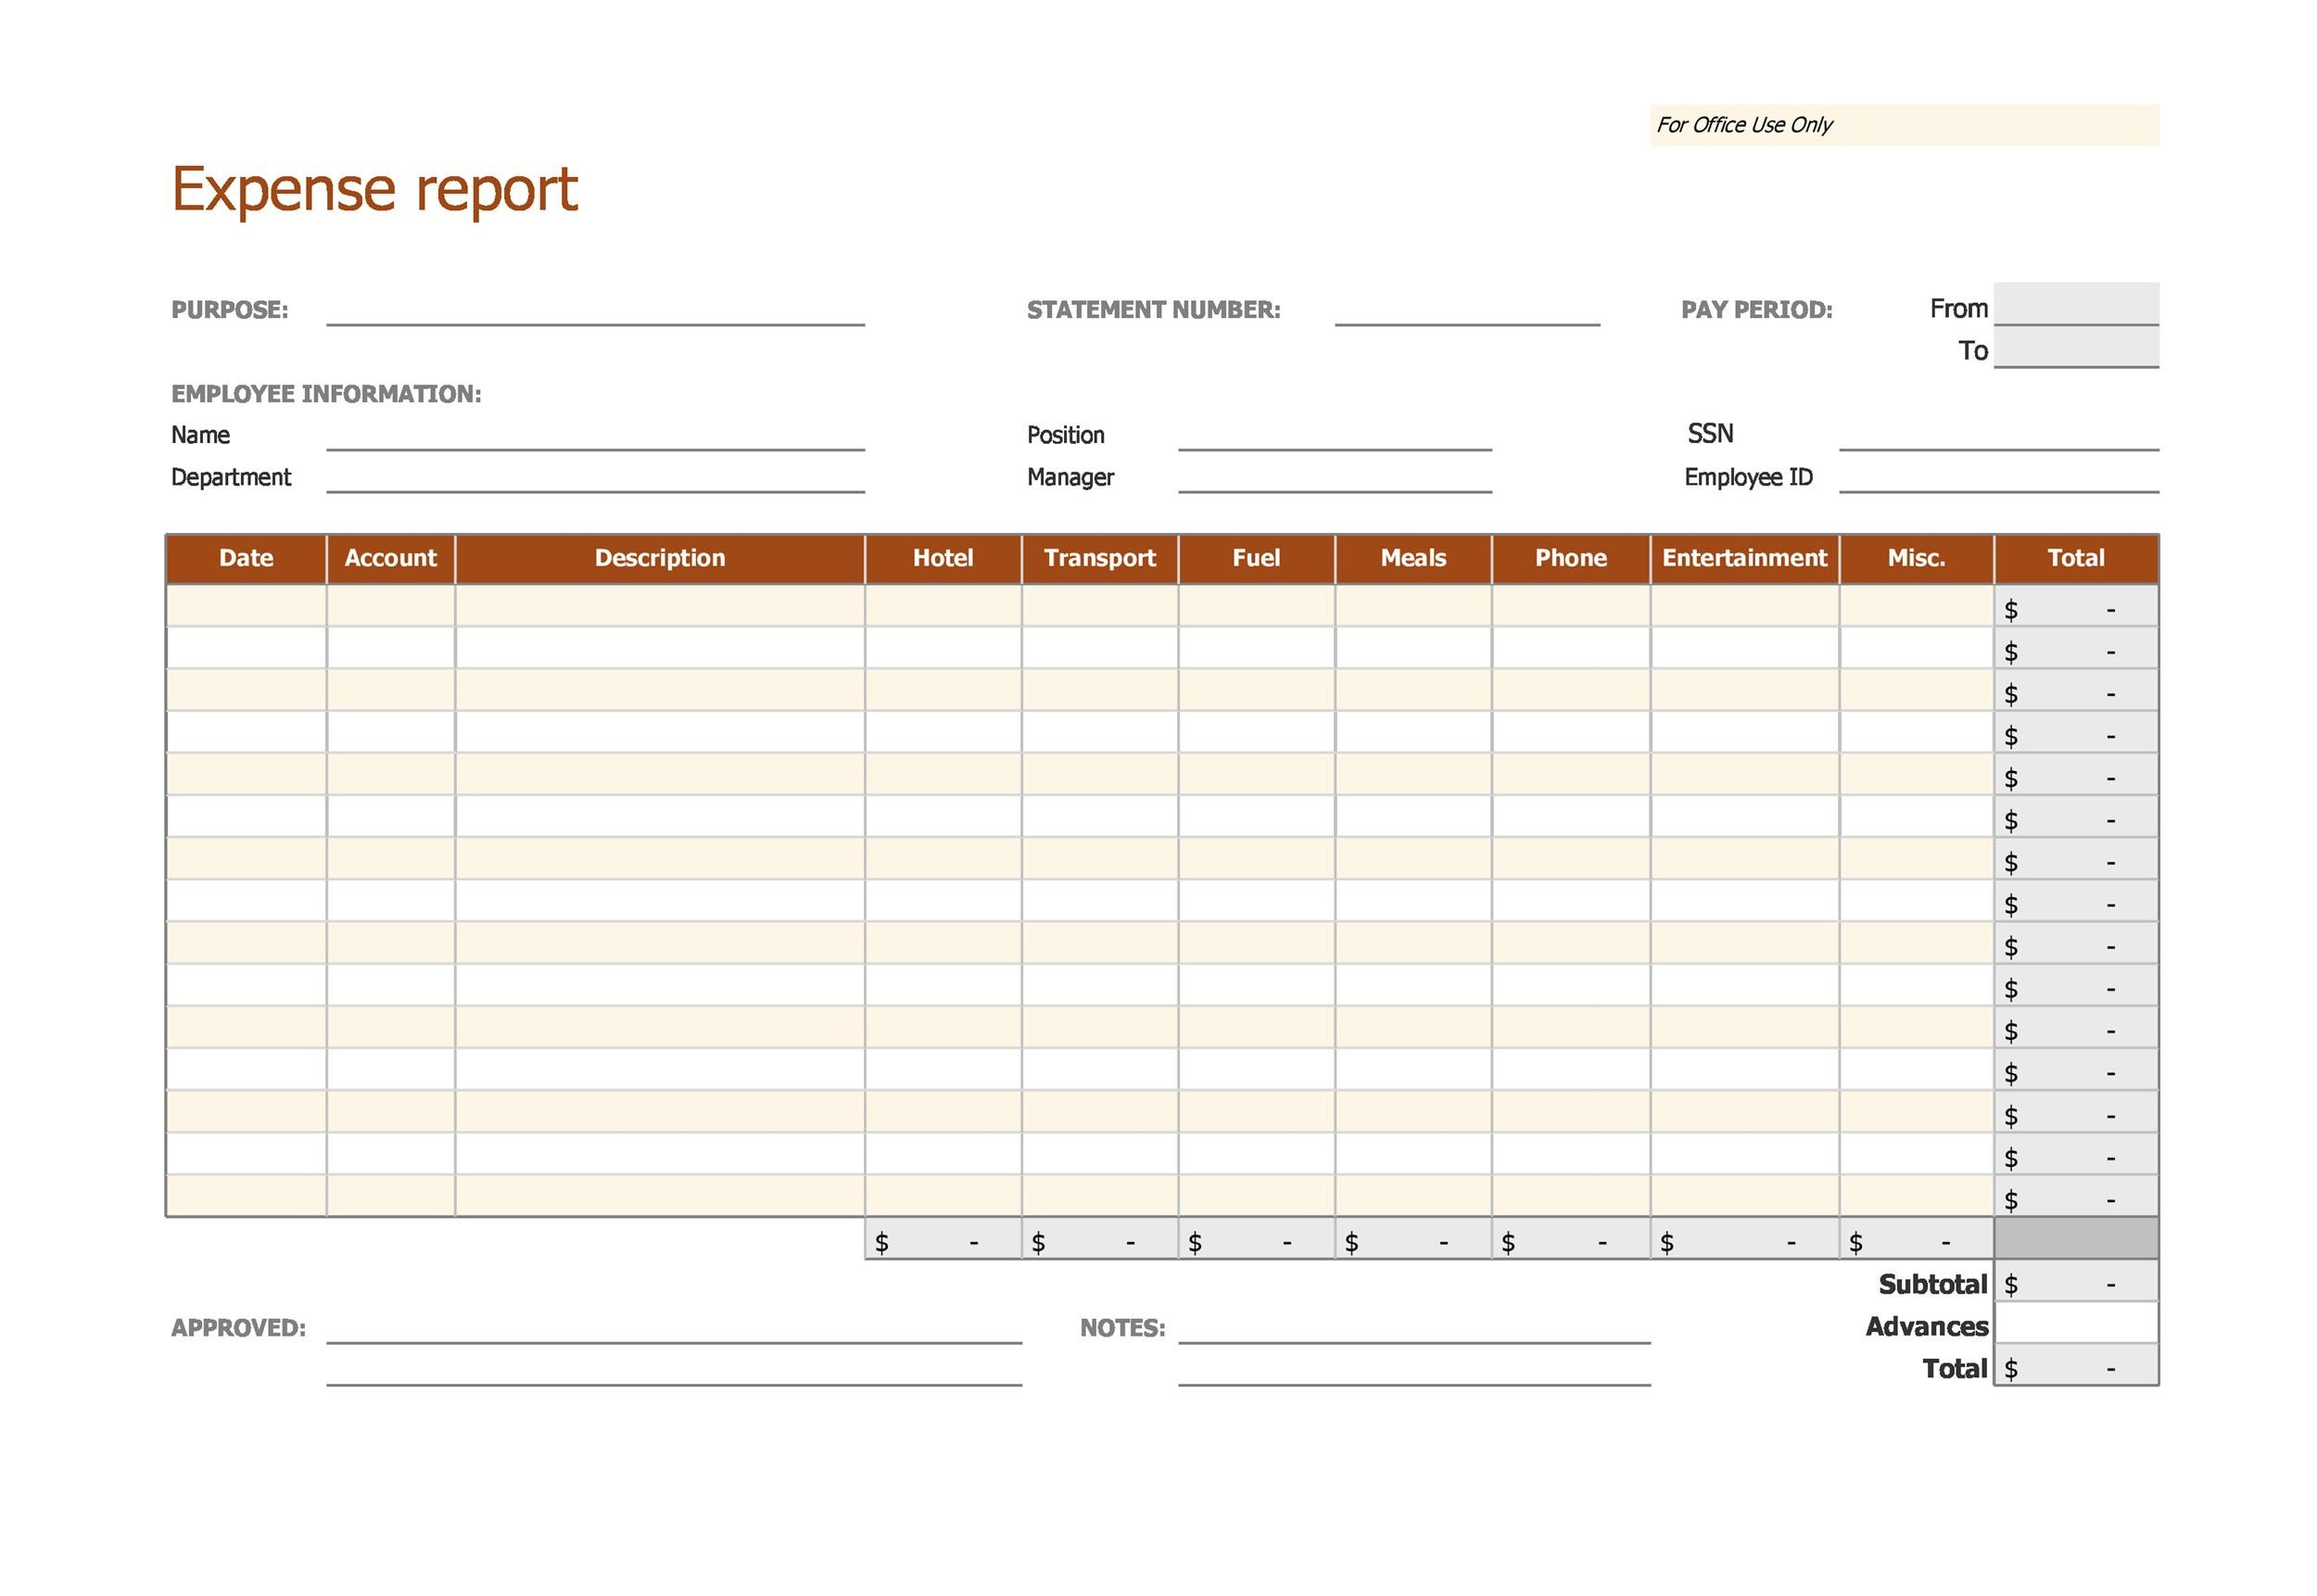 40+ Expense Report Templates to Help you Save Money - Template Lab - examples of expense reports